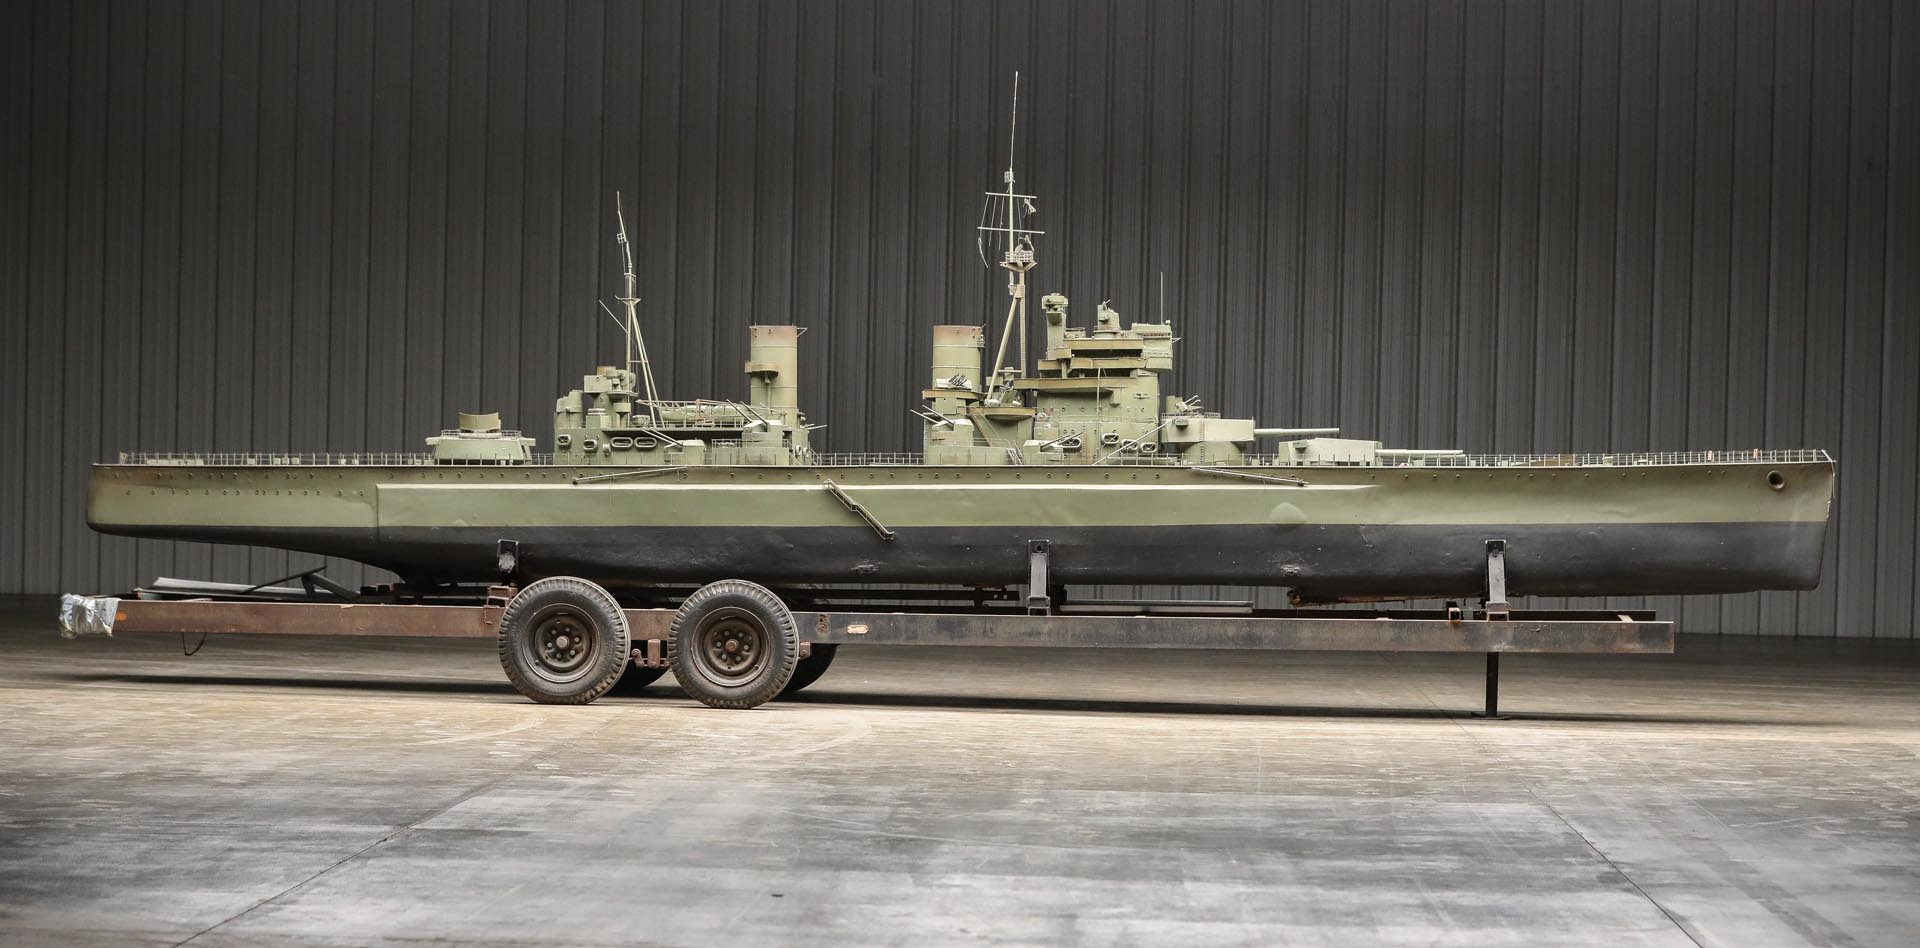 Prince Of Wales British Navy Battleship Movie Prop with Custom Tandem Axle Trailer